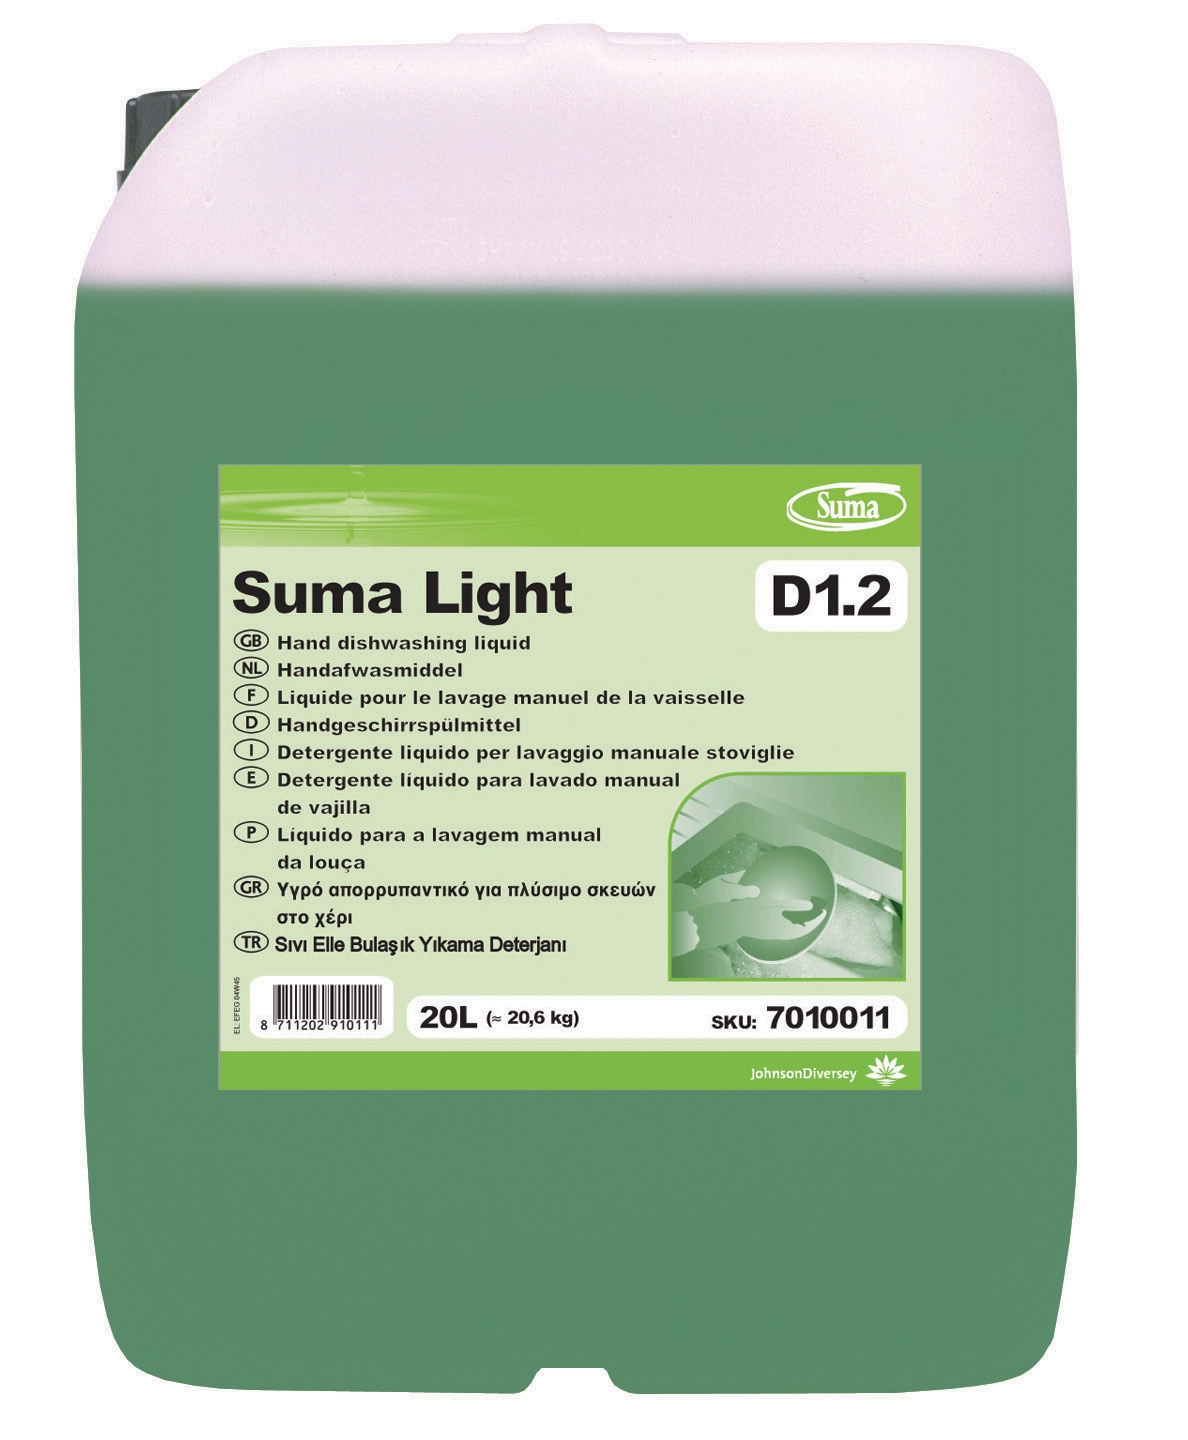 Suma Light D1 2 Diversey Johnson Manual Dishwasher 20 L